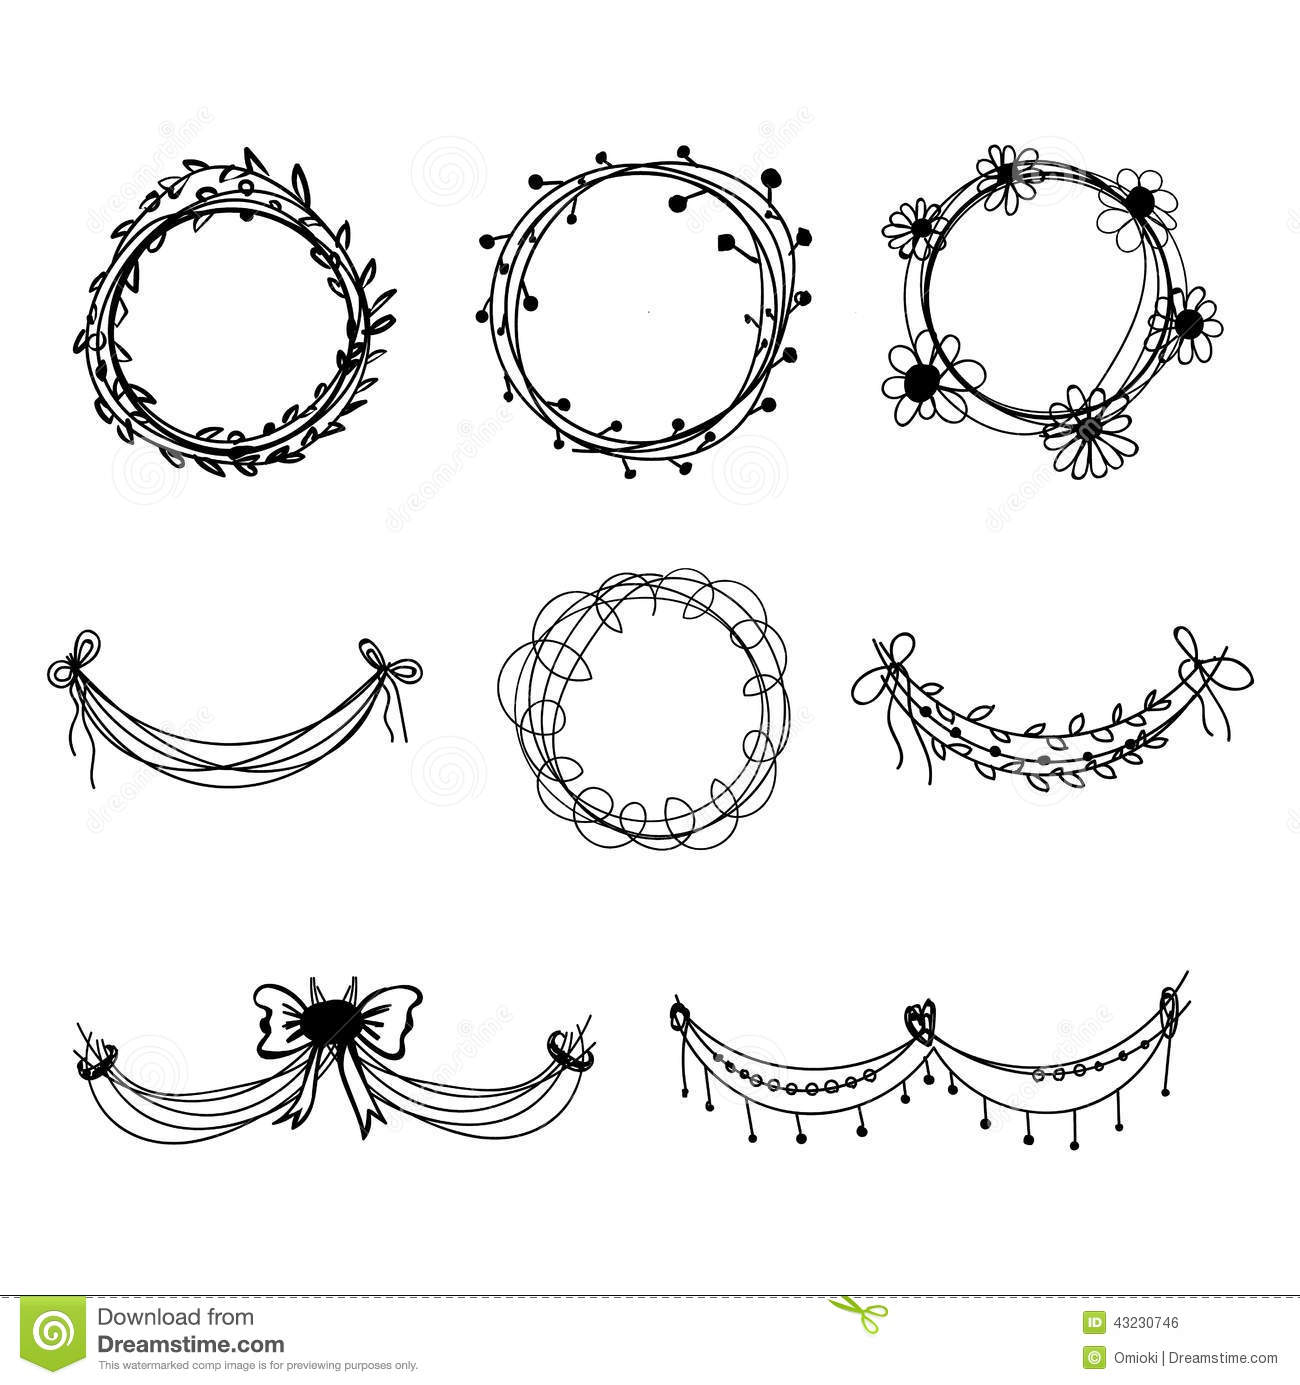 Black and white floral wreath stock vector image 65241515 - Black And White Floral Wreath Stock Vector Image 65241515 1300x1390 Set